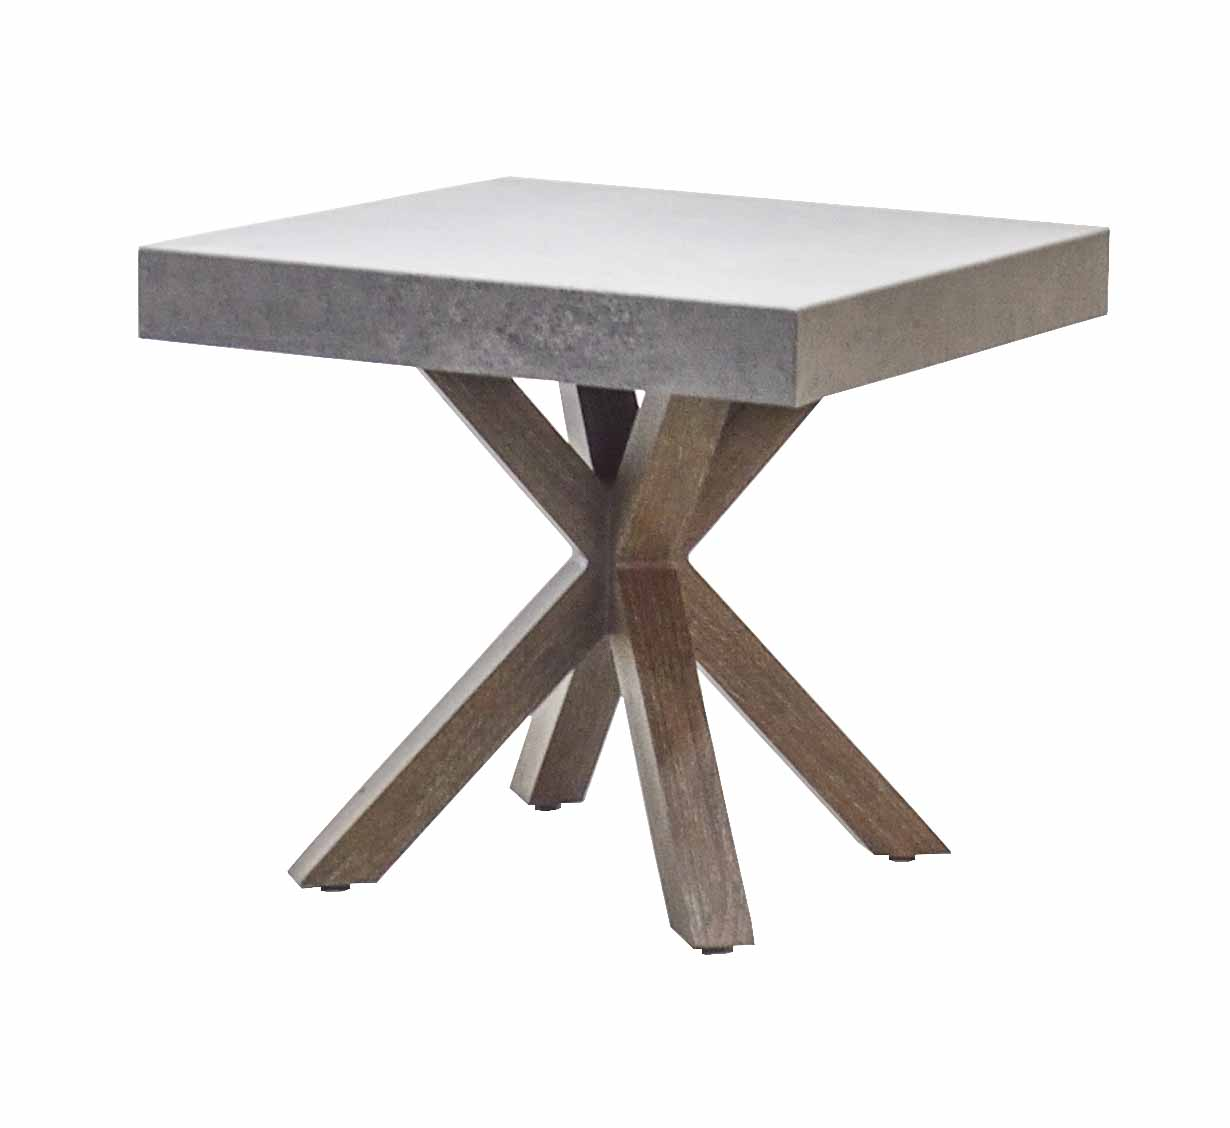 "CLR-23S 23"" Square End Table   23""x 23"" x 21"""